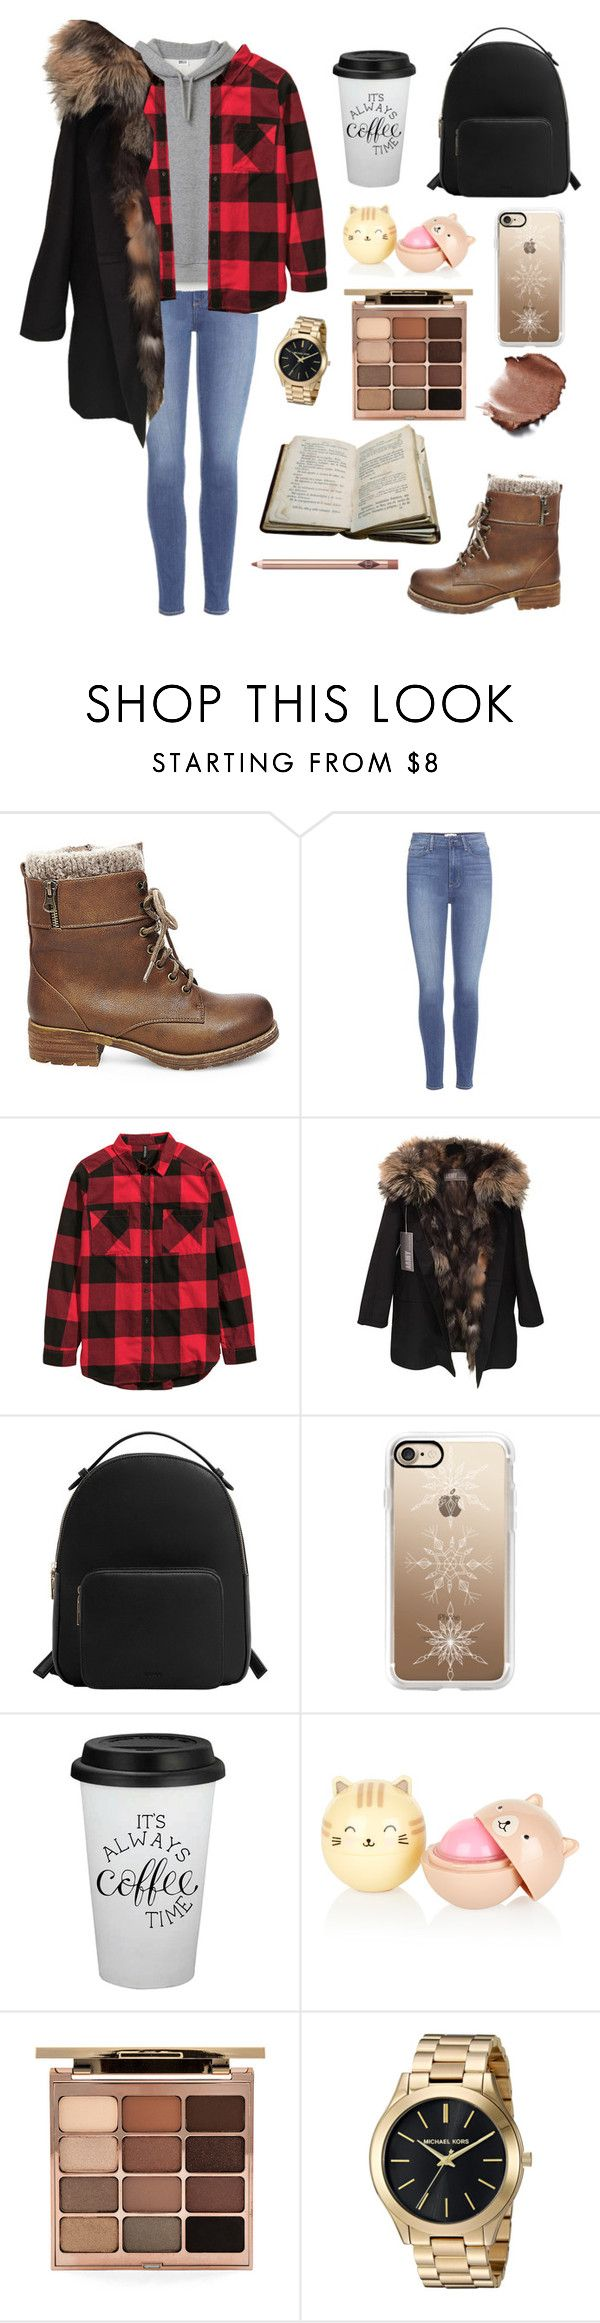 """""""Winter boots: warm brown"""" by liutong1200500632 ❤ liked on Polyvore featuring Steve Madden, Paige Denim, H&M, Yves Salomon, MANGO, Casetify and Stila"""